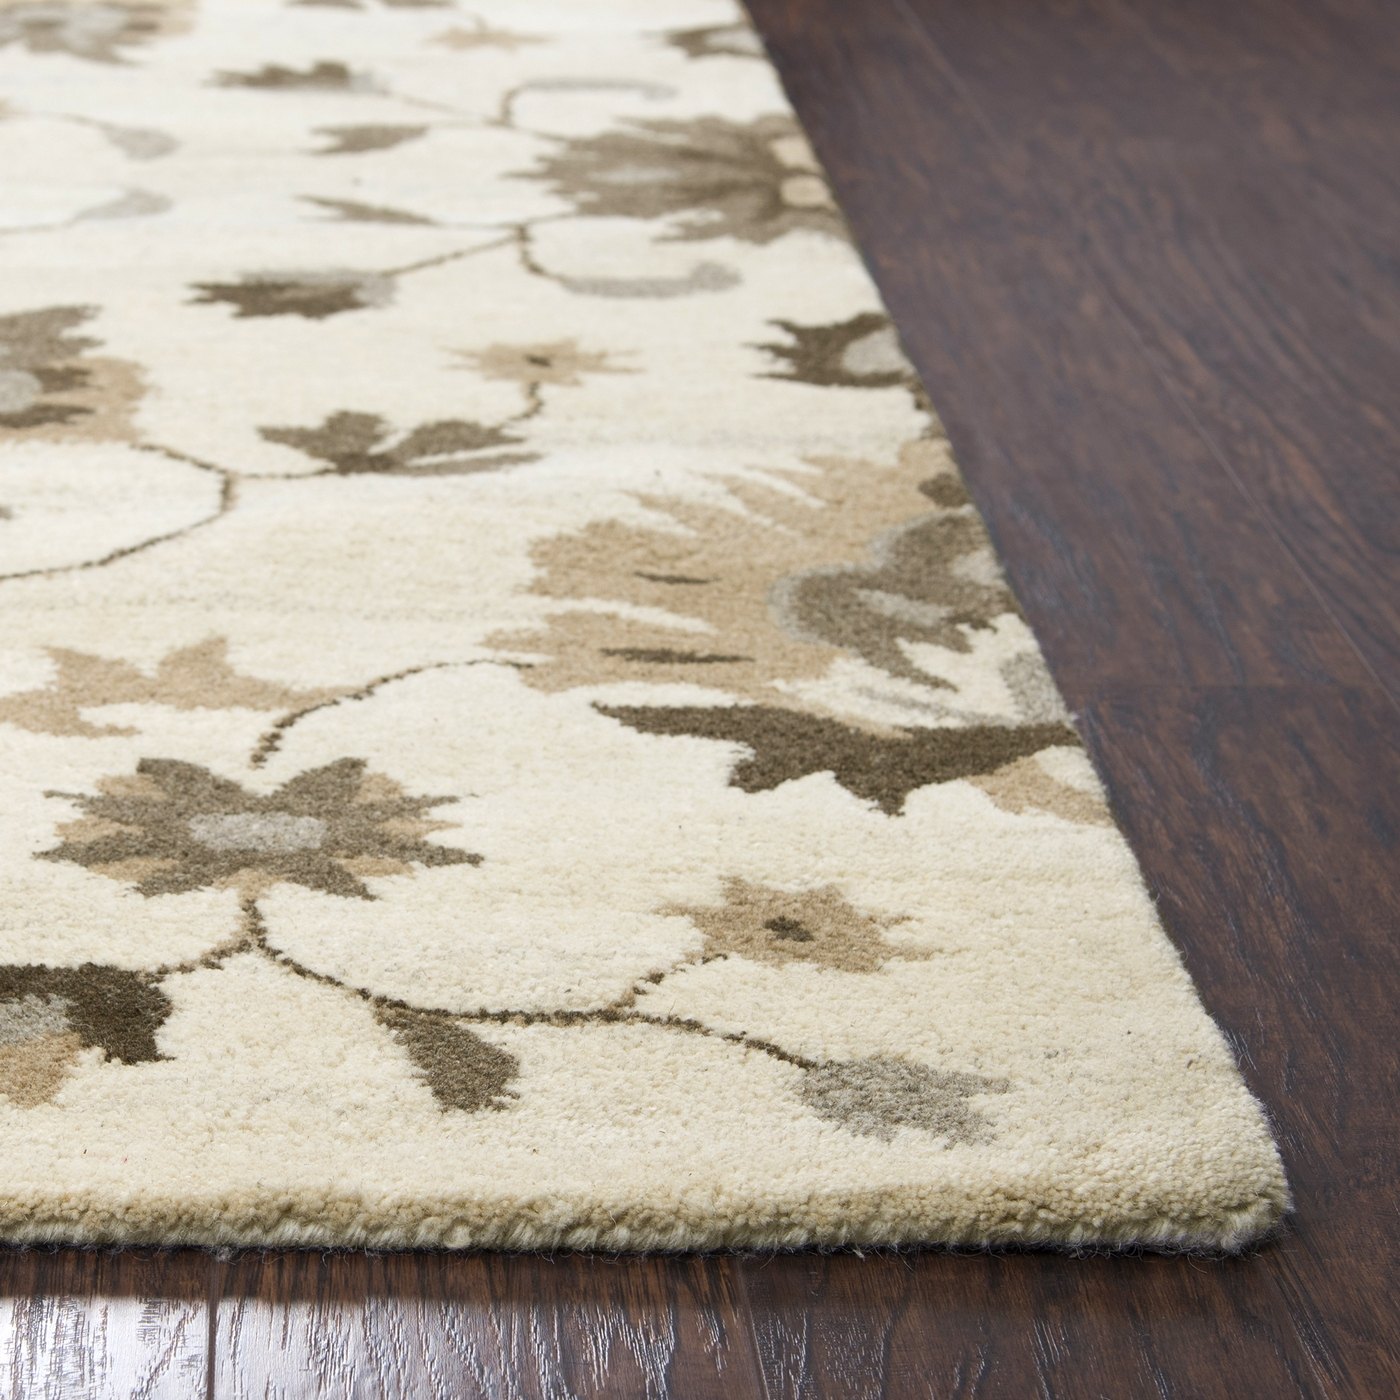 Suffolk Floral Vines Wool Area Rug In Beige Amp Natural 8